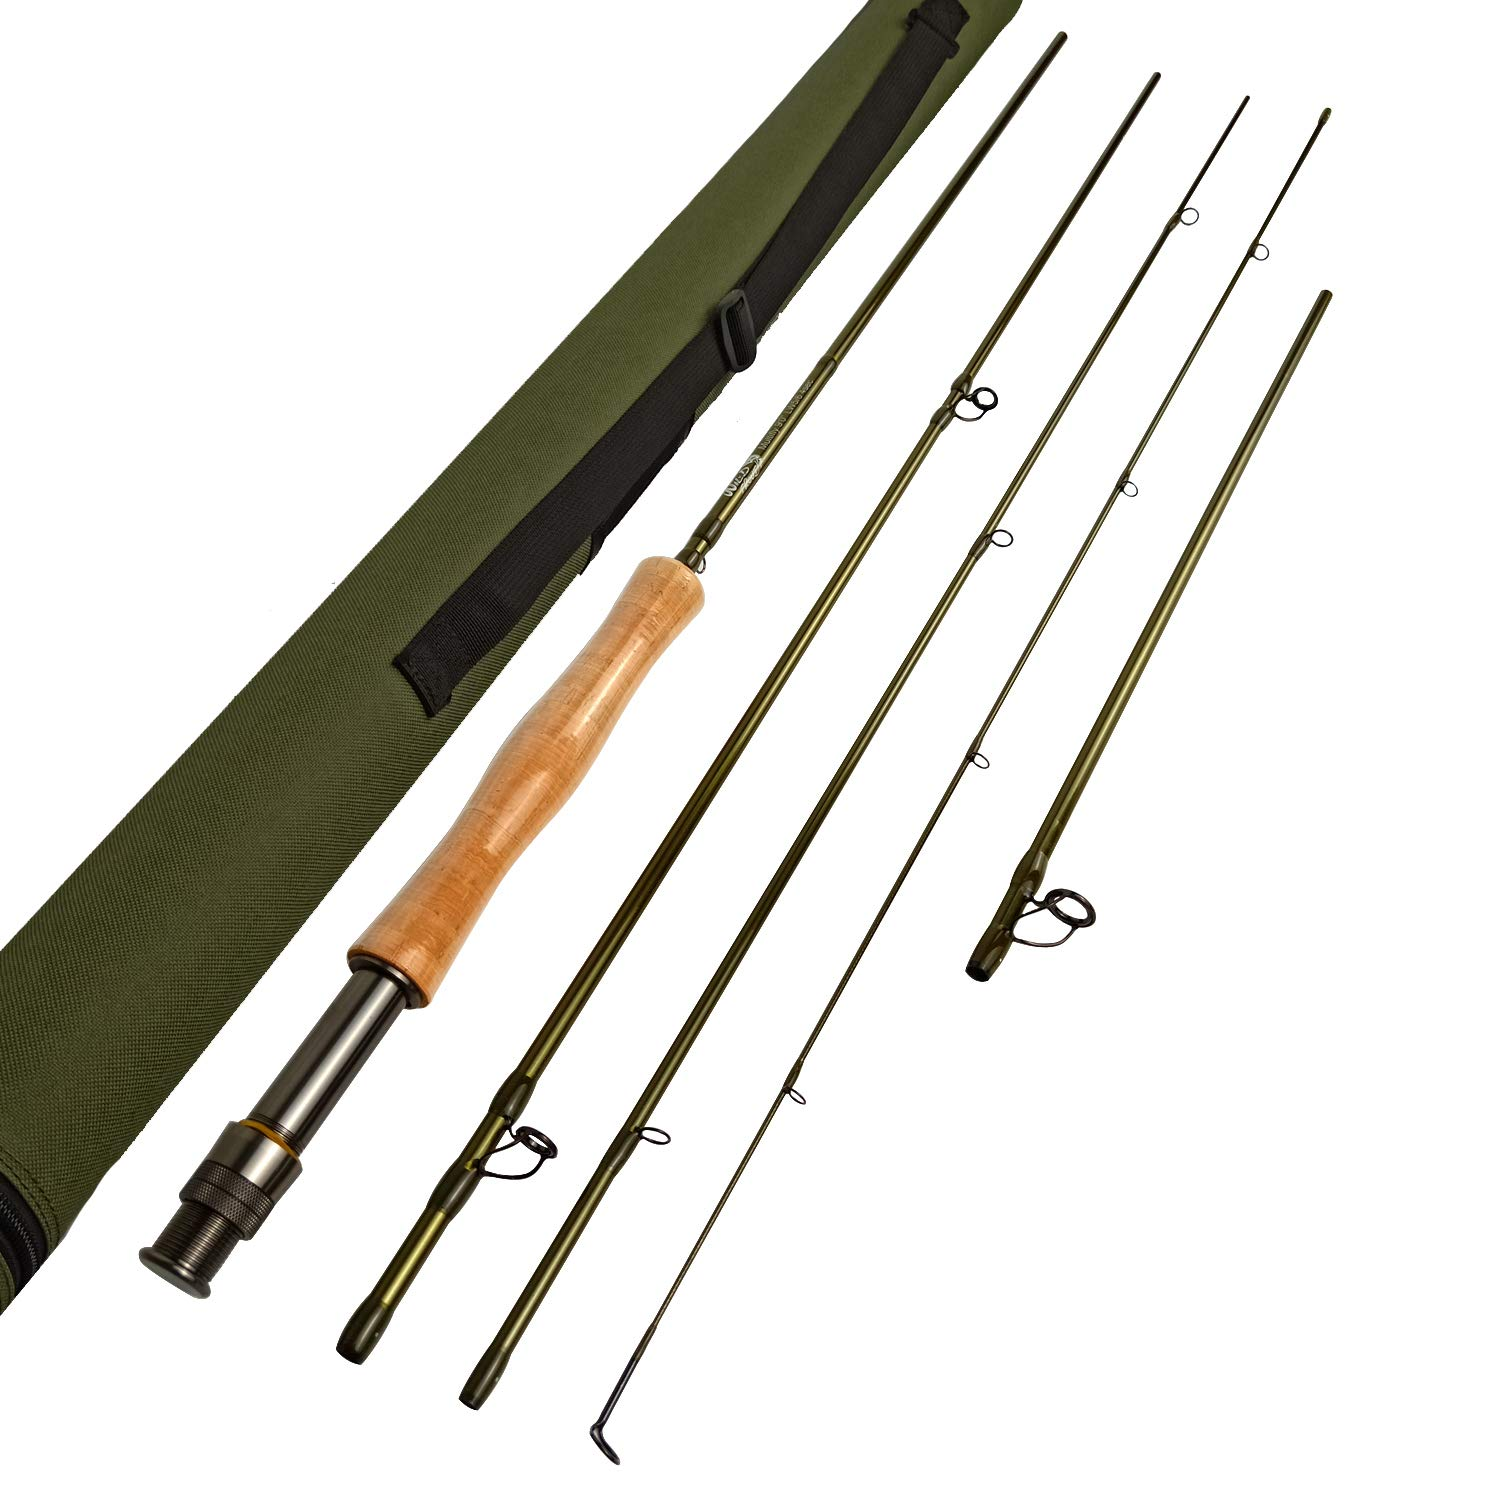 Fly Fishing Rod Z European Master Design Wild Trout Multi-Fly IM12 Nano Fly Fishing Rod 9 LW5 6 4pc into 10 4 Fast Action with Extra Extension Section Trout Nymph